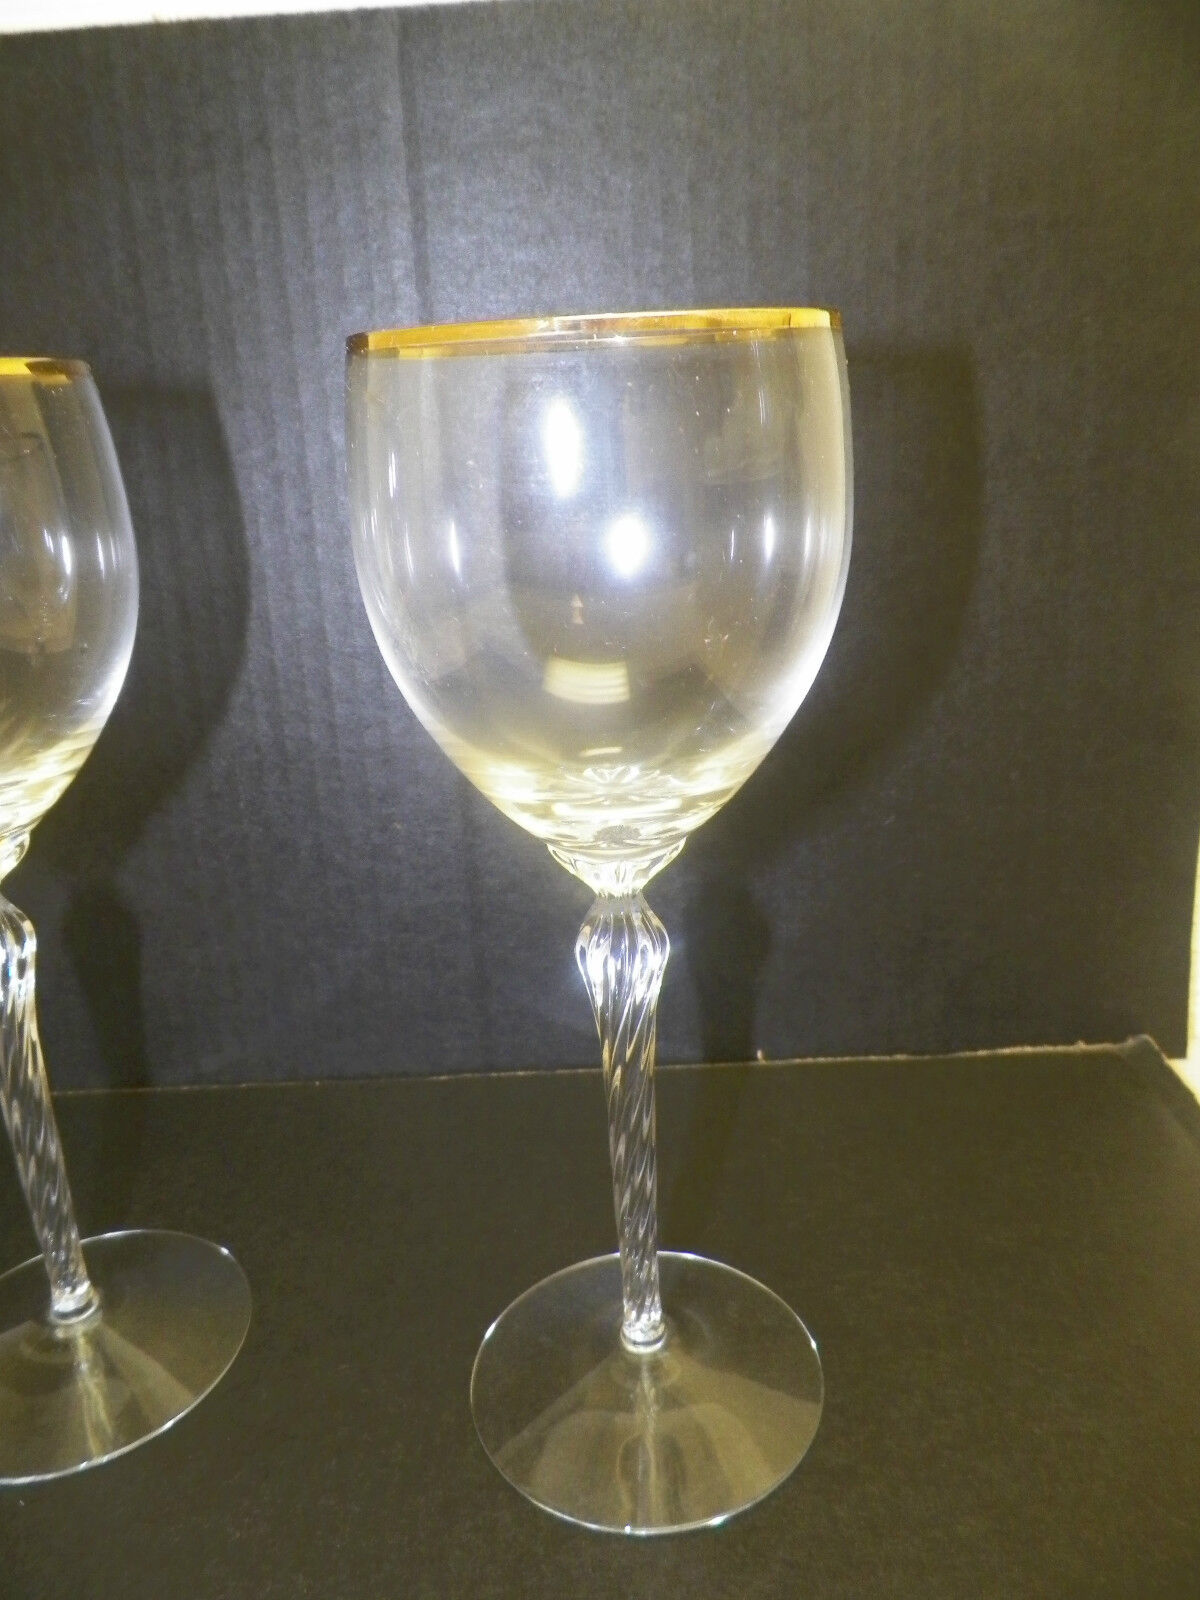 Lenox crystal stemware gold rim wine glasses 8 1 2 tall pair two 2 used picclick - Lenox gold rimmed wine glasses ...